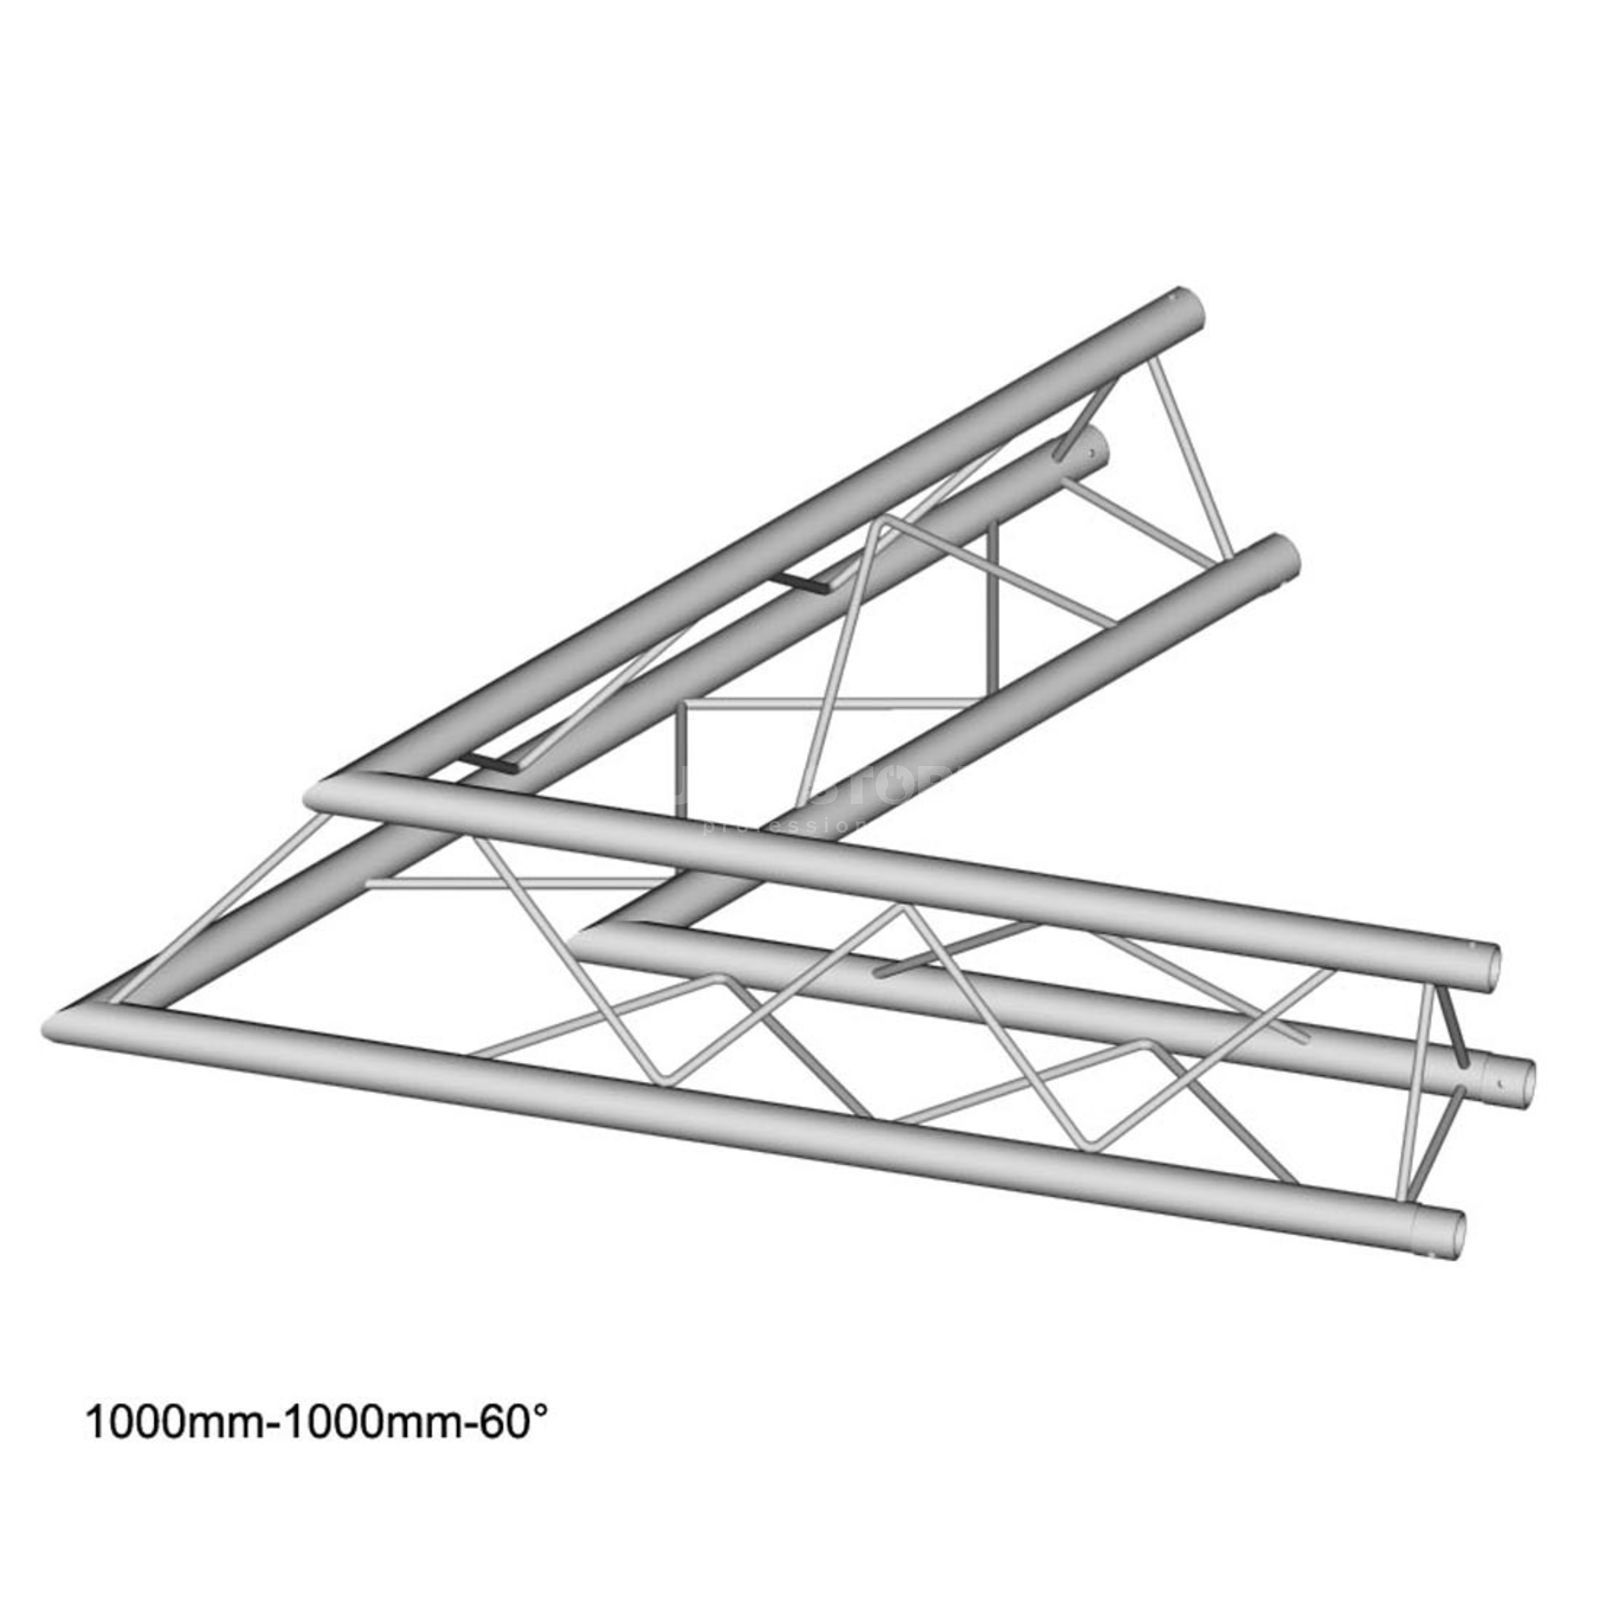 DURATRUSS DT 23 C20-L60, 3-Point Truss 60° Corner, 2-Way Produktbillede